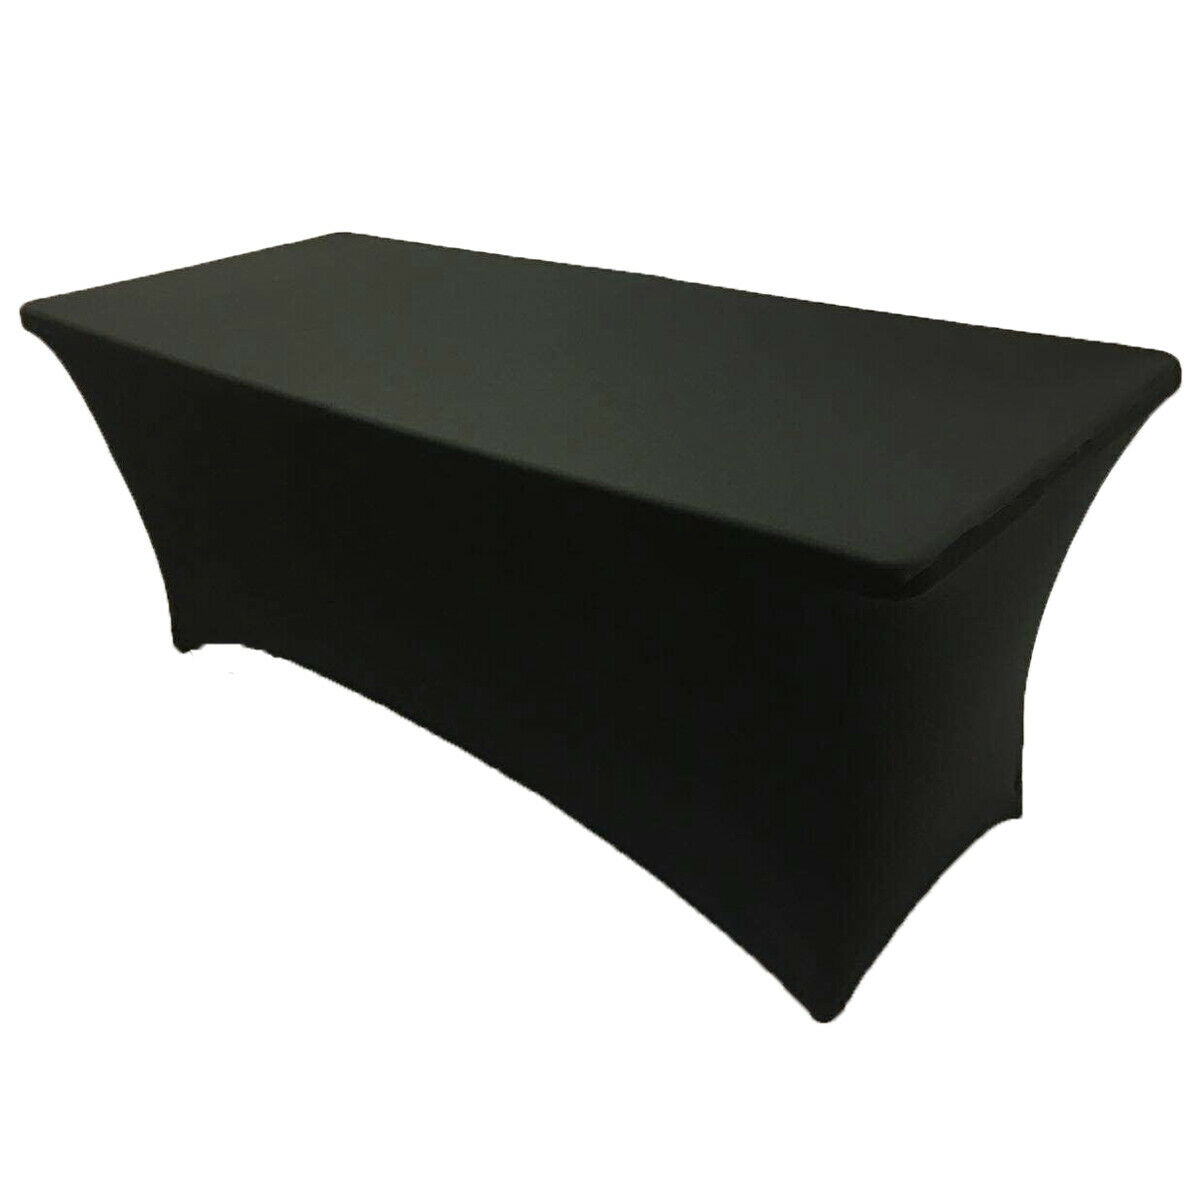 4' ft x 2.5'ft Spandex Fitted Stretch Tablecloth Table Cover Wedding Party Black